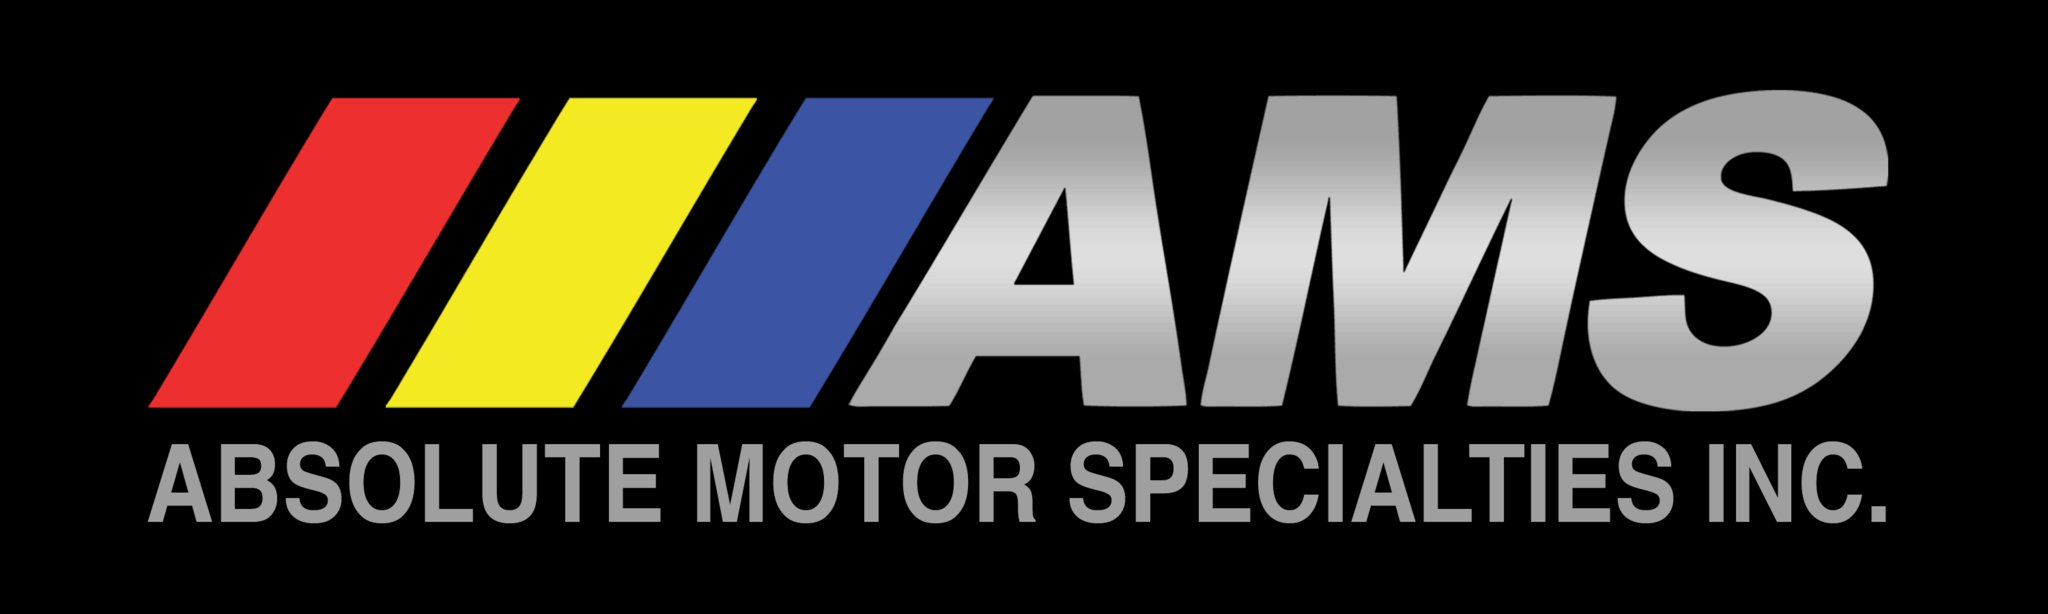 Absolute Motor Specialties Inc. (AMS INC)